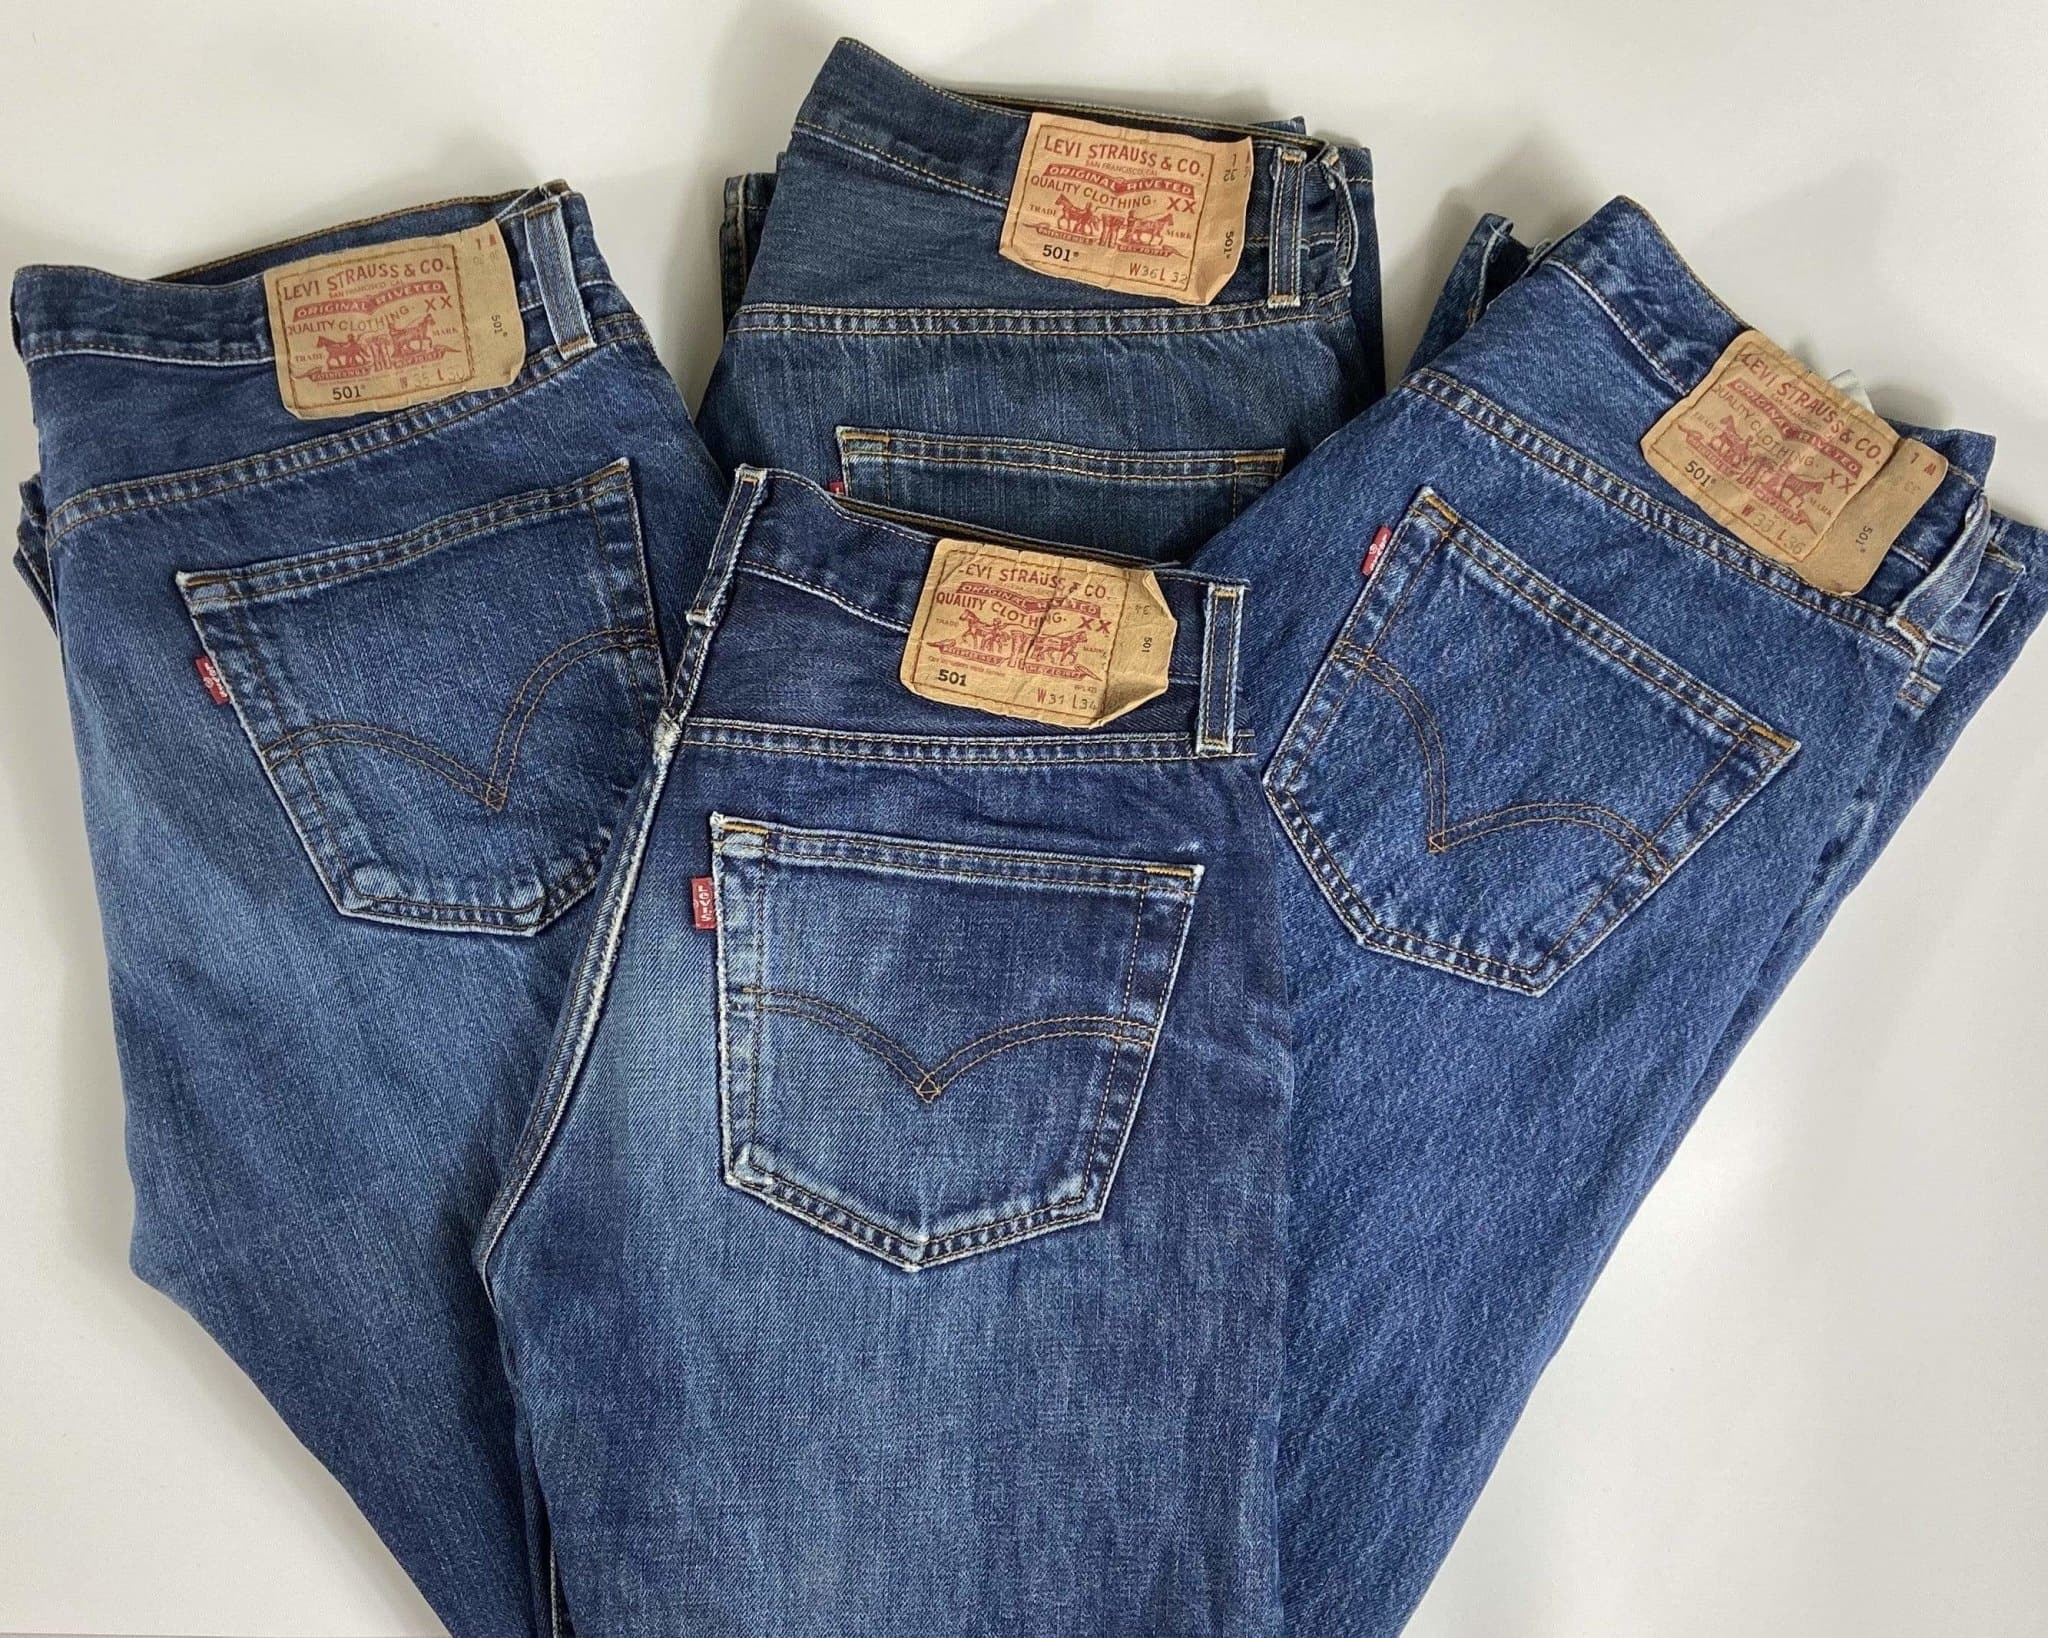 Vintage Levi's Classic 501 Jeans W34 L34 (G17) - Discounted Deals UK